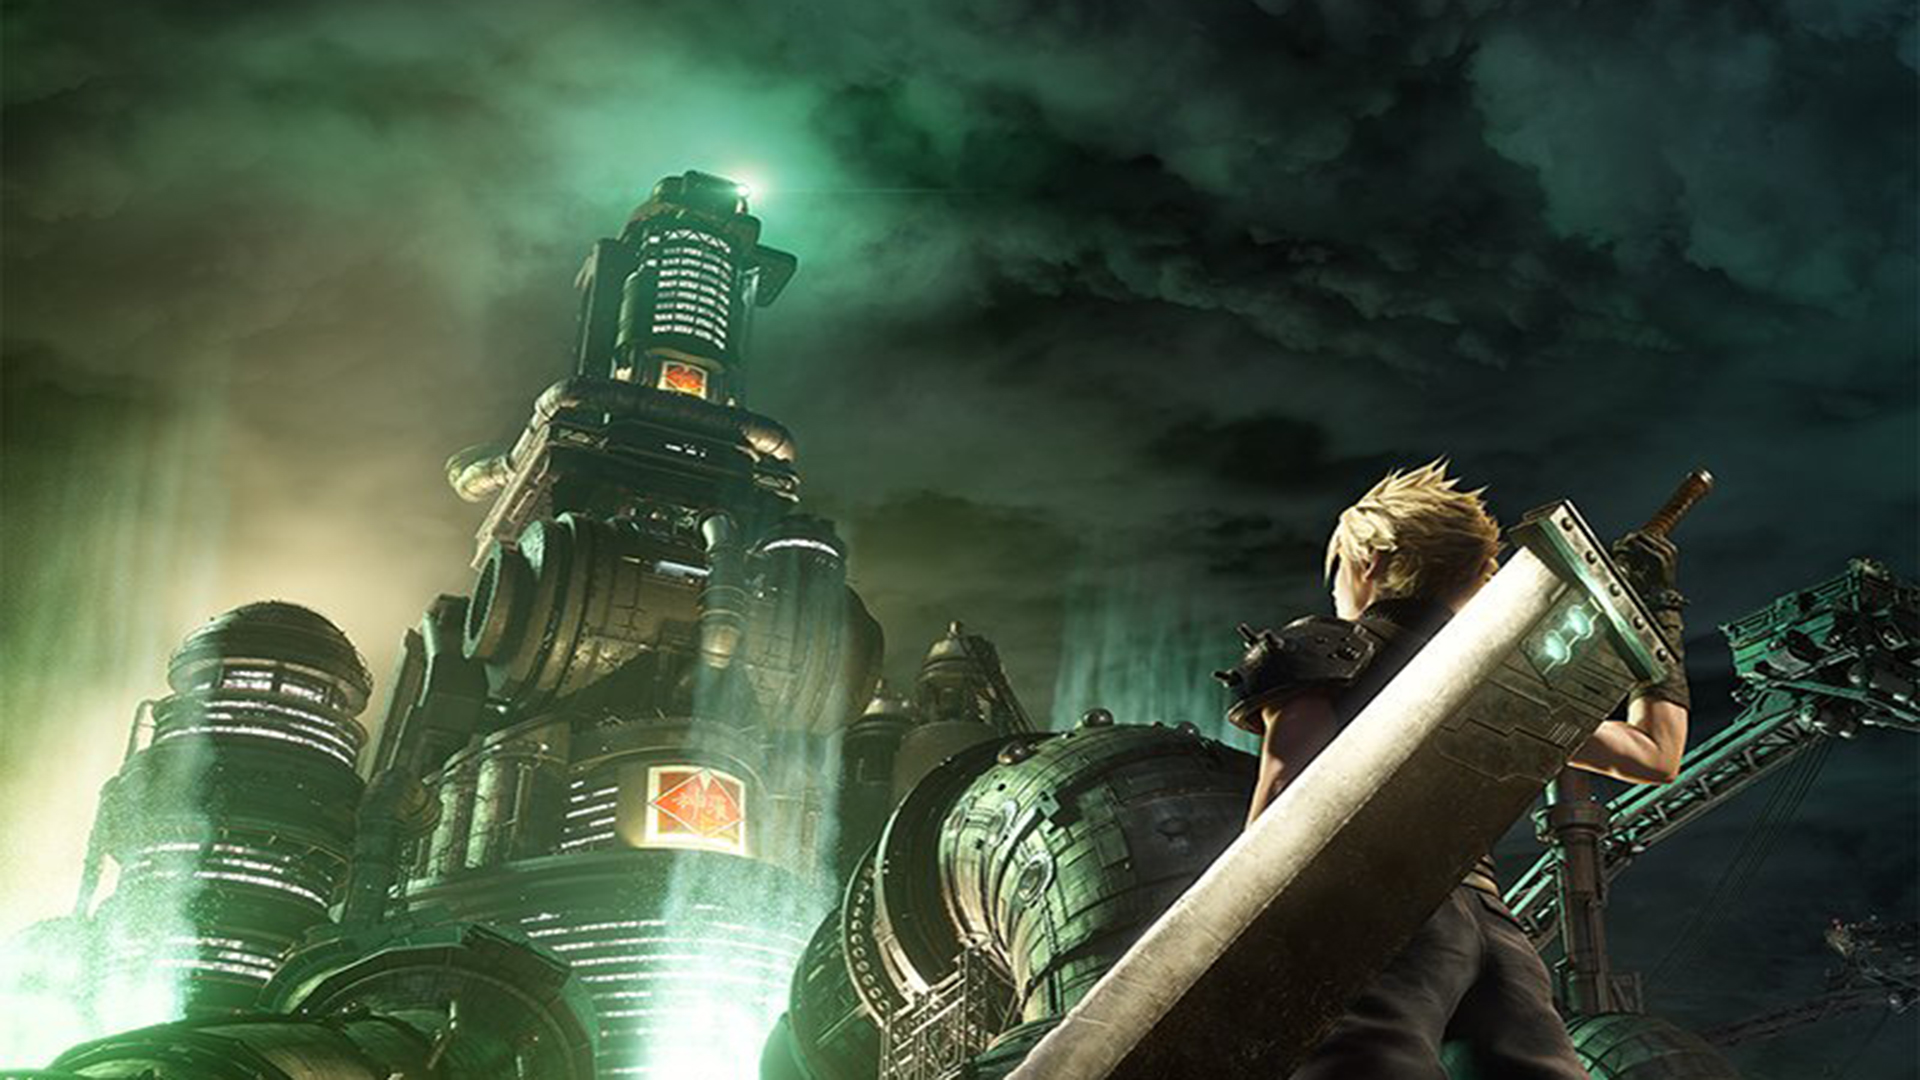 ff7 remake Xbox one Every Major Detail We Know